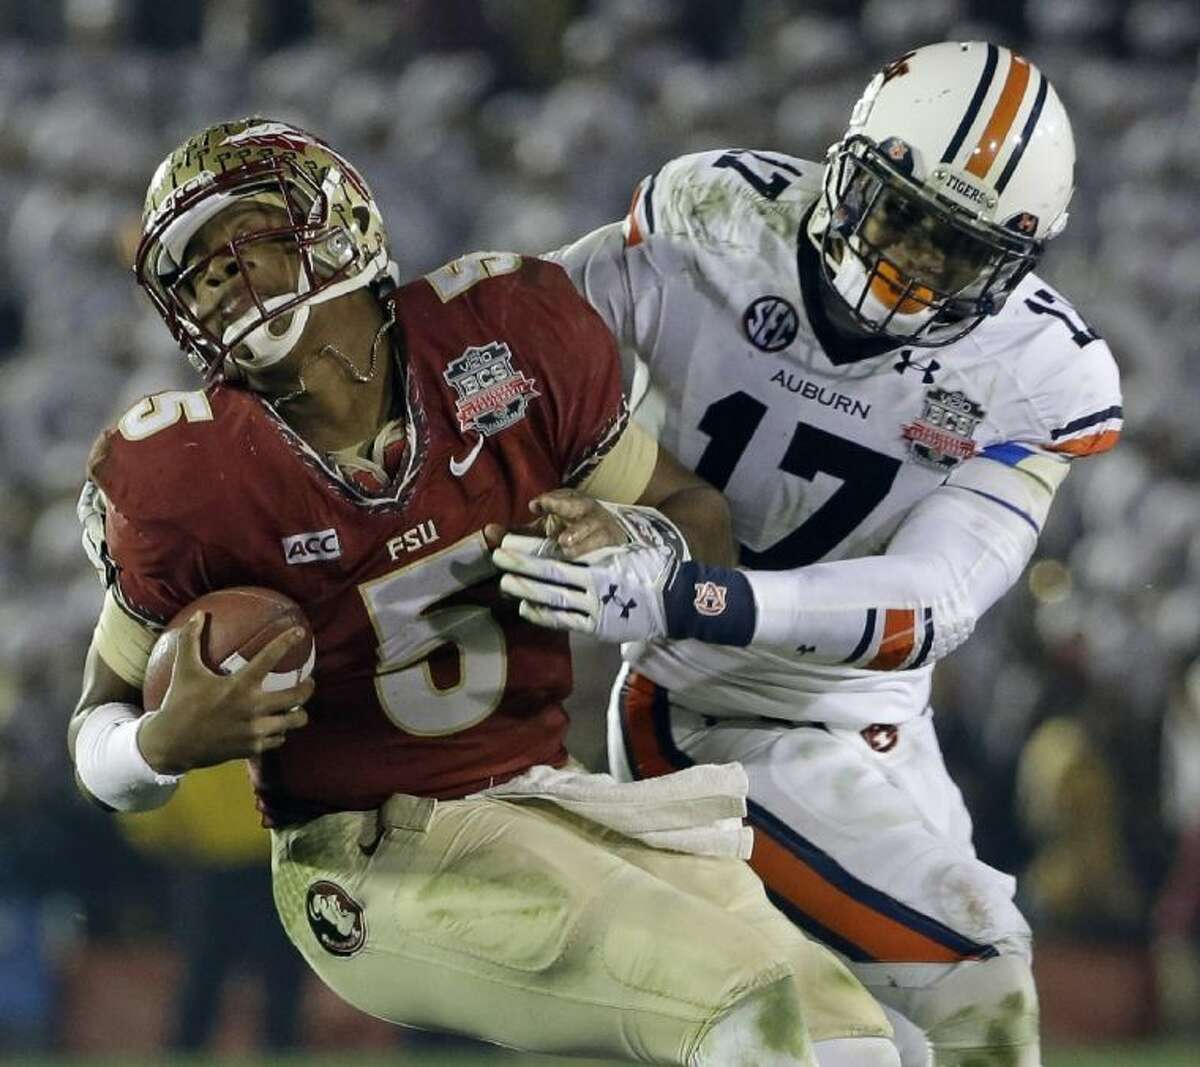 Auburn's Kris Frost tackles Florida State's Jameis Winston on a run during the second half of the NCAA BCS National Championship game. Florida State won 34-31.